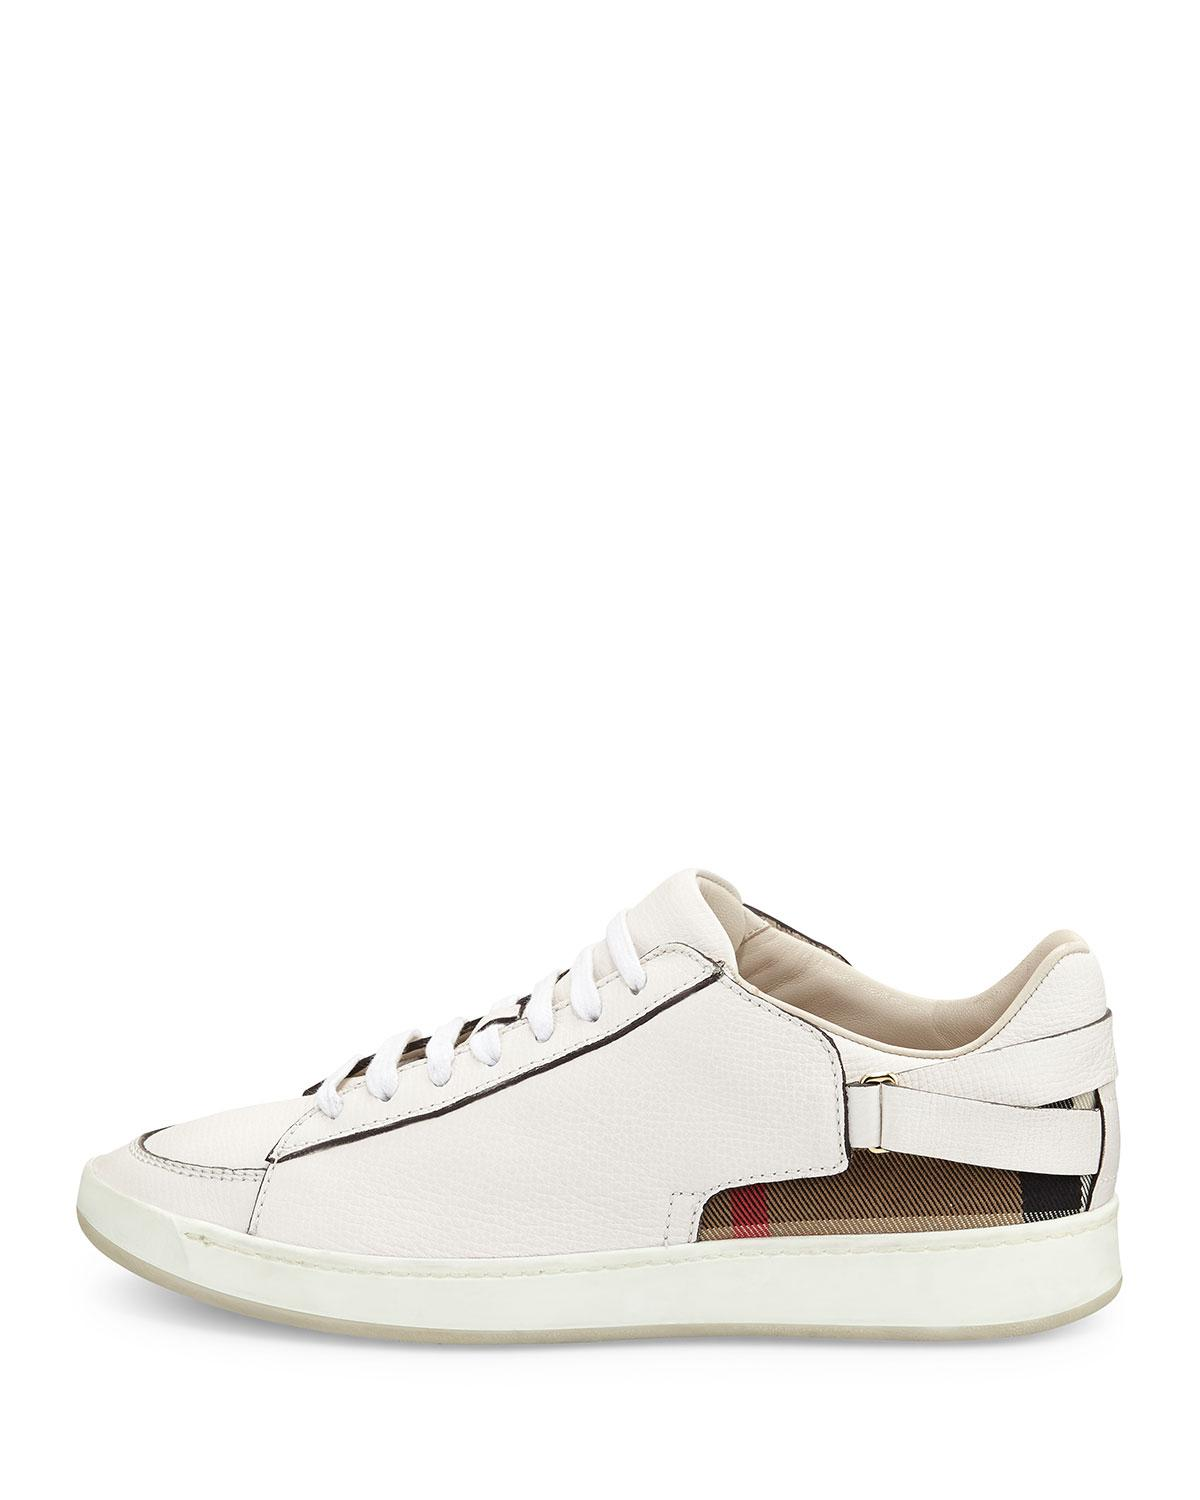 burberry sneakers up to 90 at tradesy